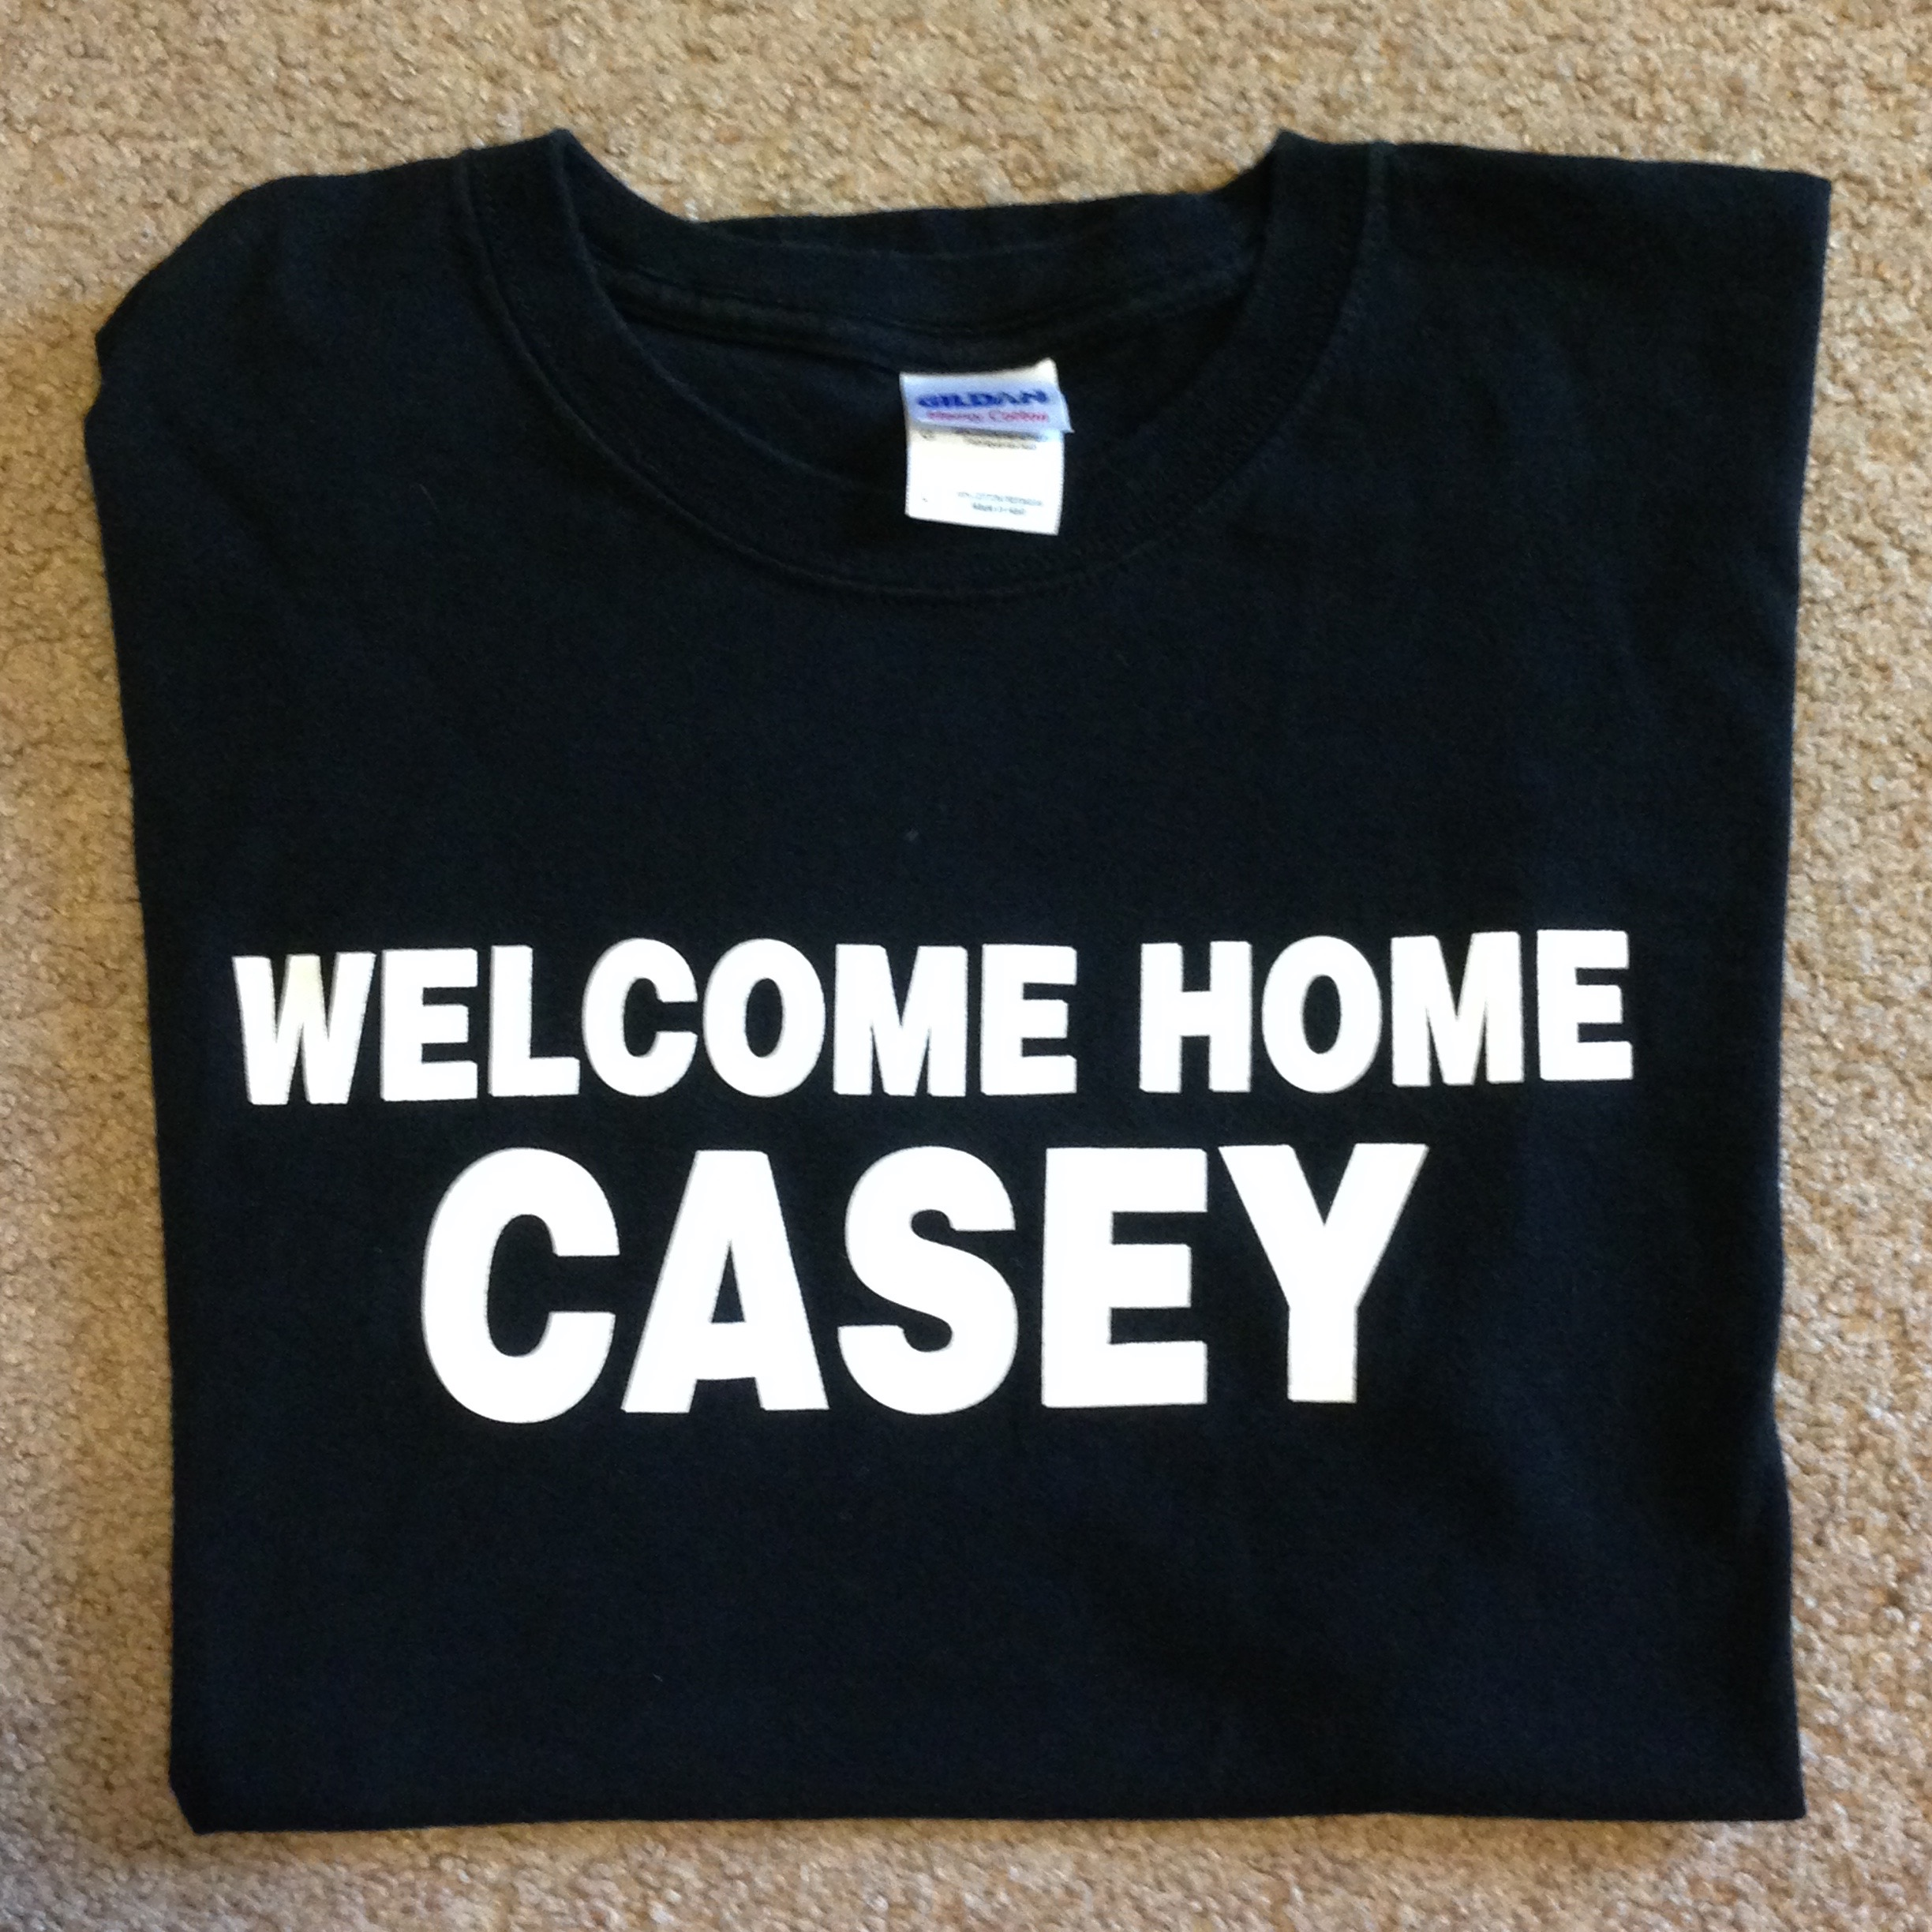 Who is Casey? Is that a girl or a guy? Where is home, and who is welcoming Casey there? Why is the shirt so simple and austere?